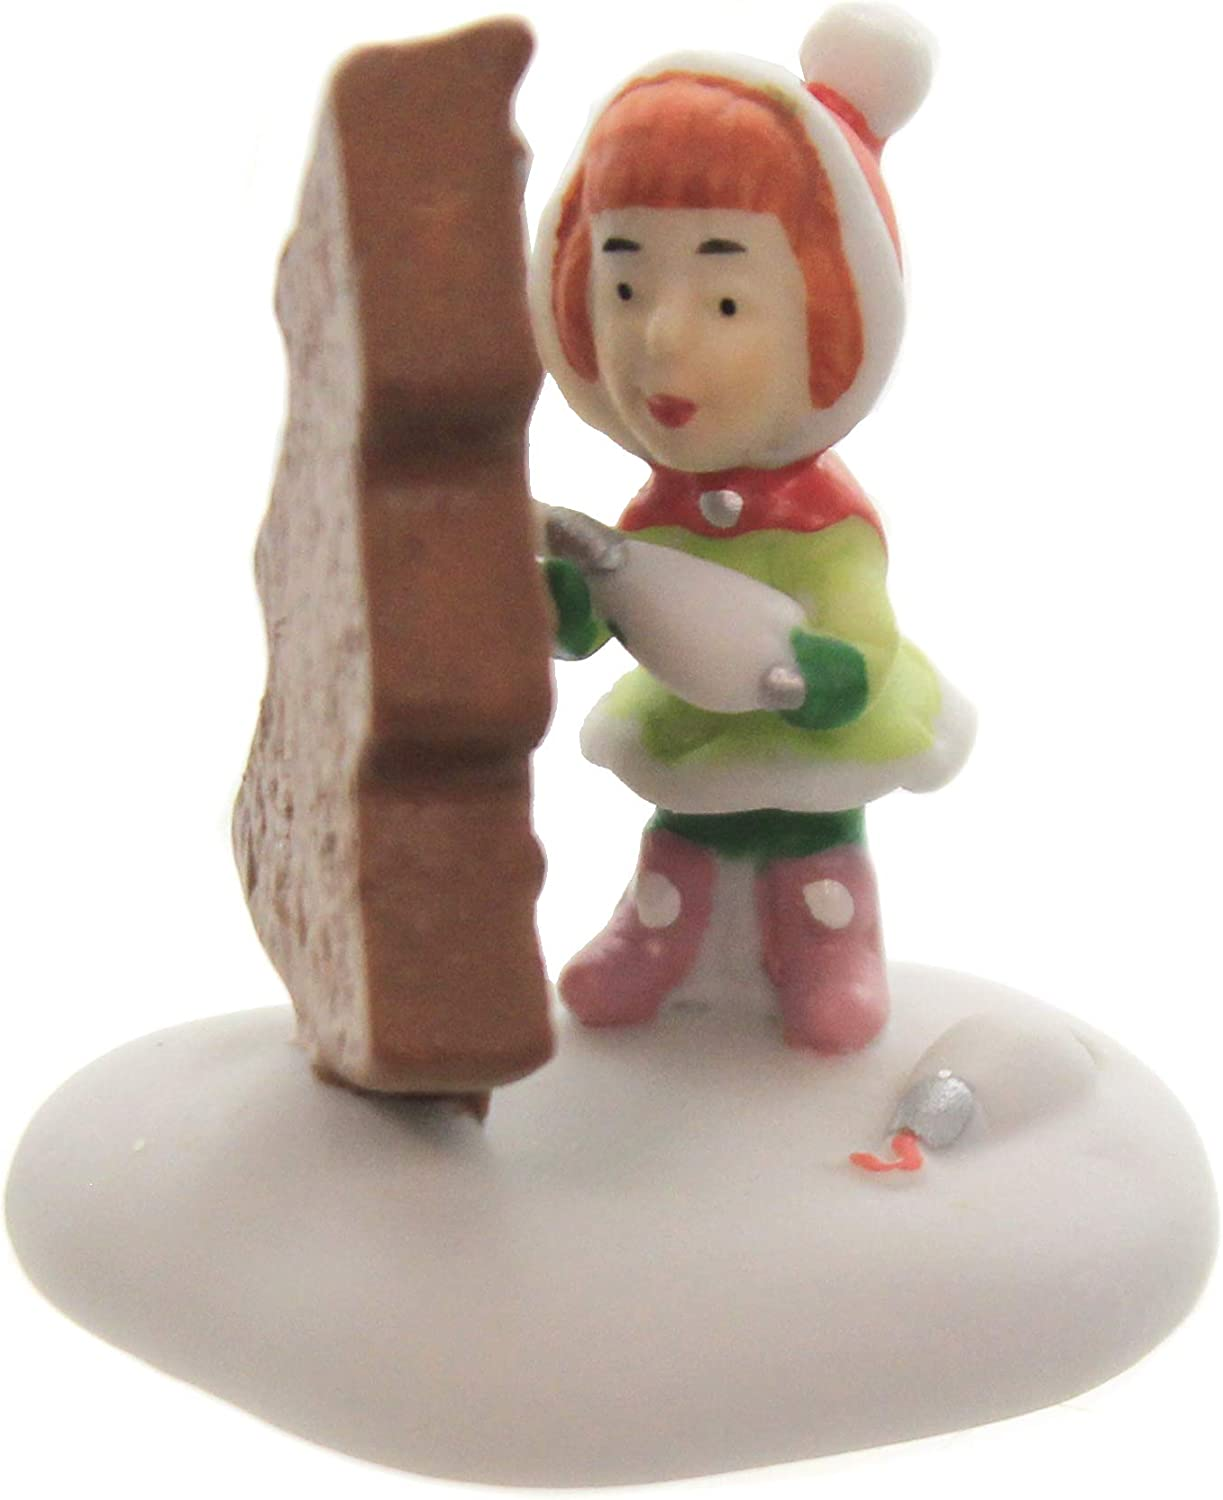 2 in H Department 56 North Pole Series Gingers Gingerbread Cookie Figurine